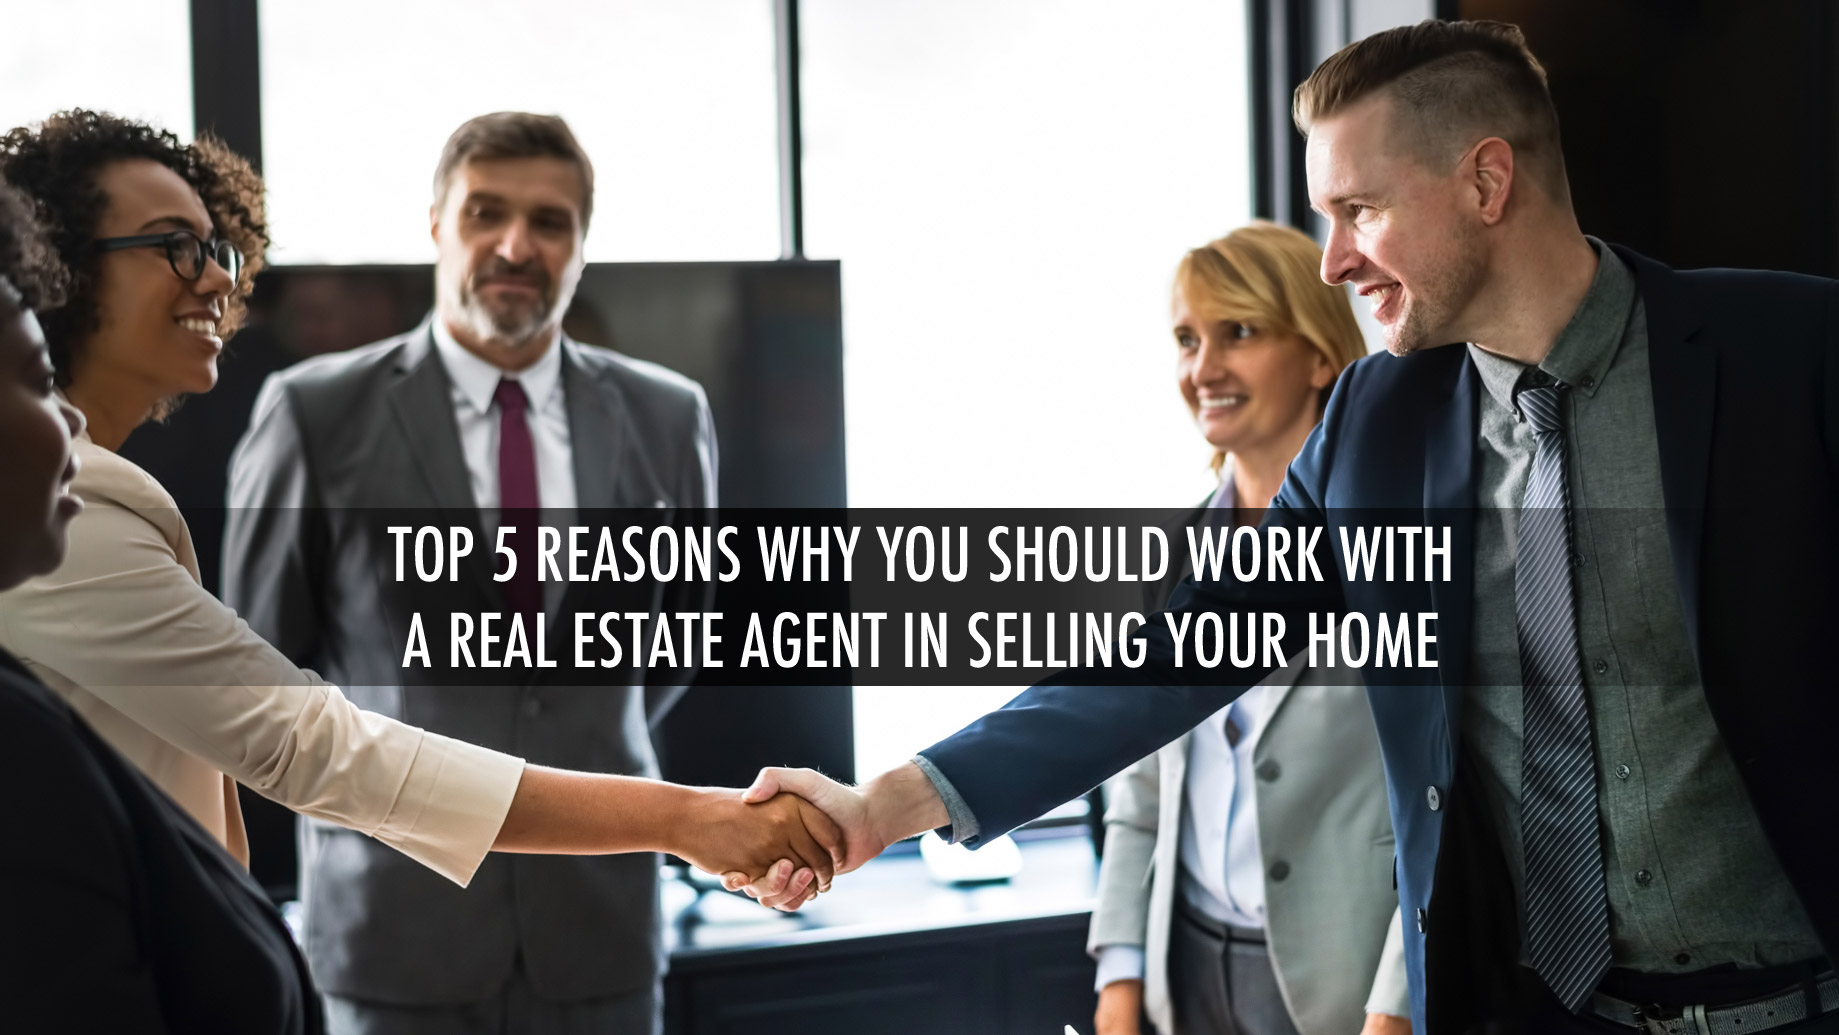 Top 5 Reasons Why You Should Work With A Real Estate Agent In Selling Your Home